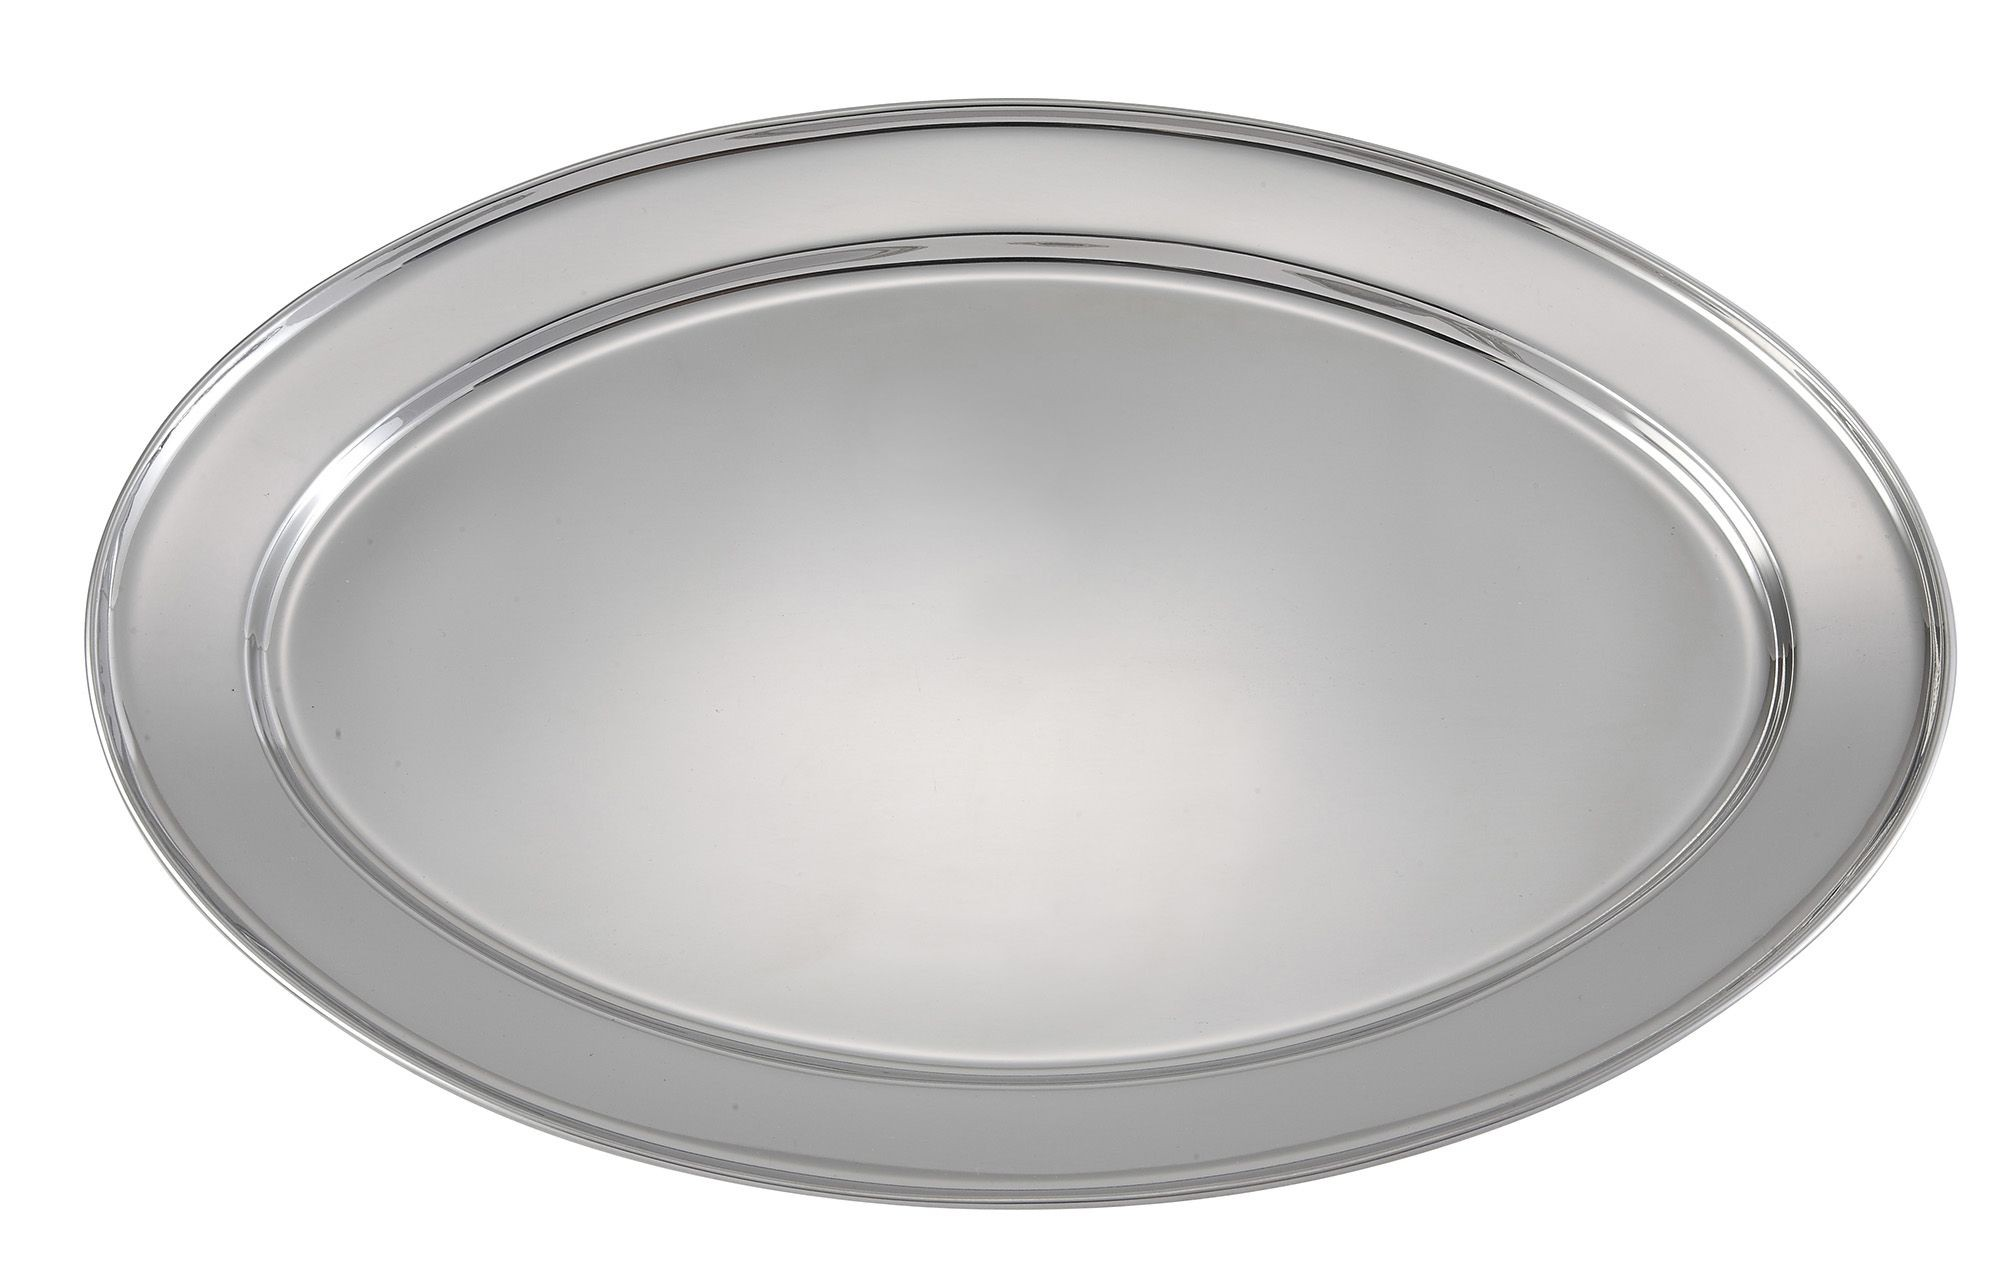 Heavy Stainless Steel Oval Platter - 18 X 11-1/2